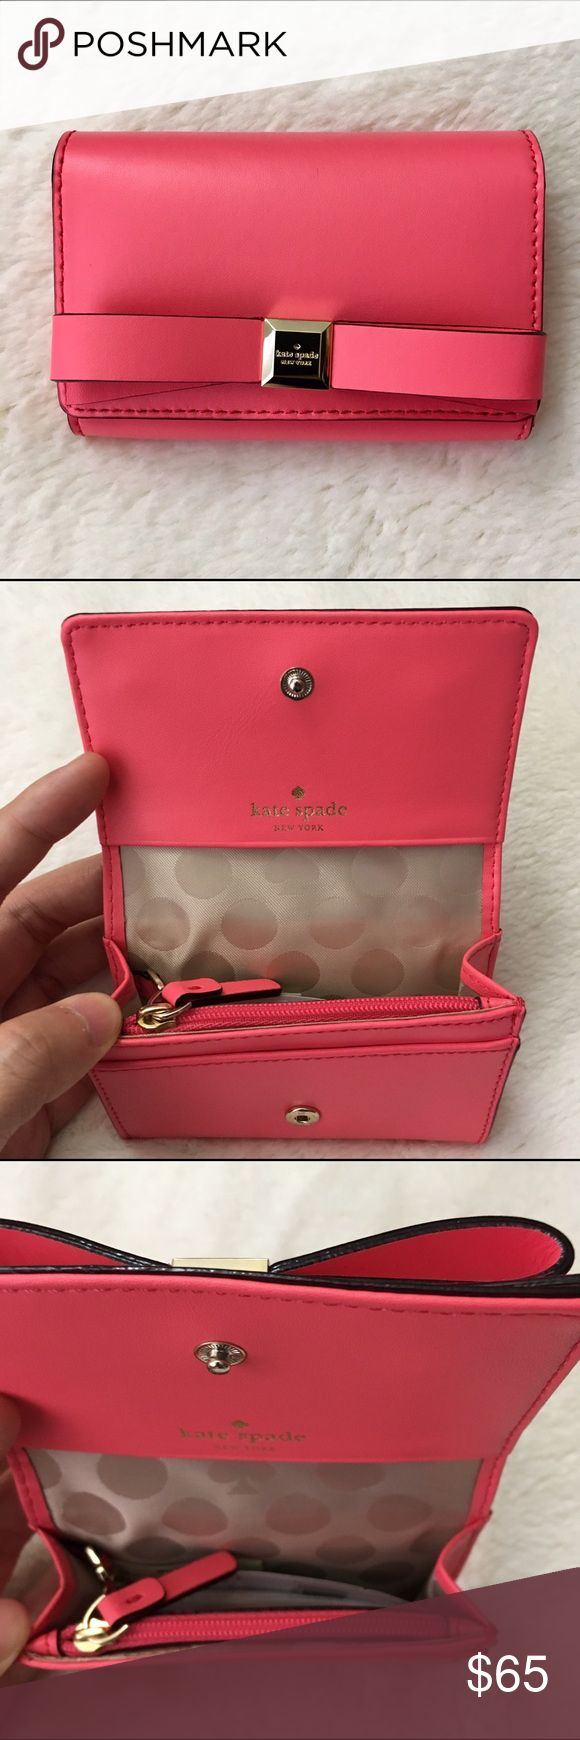 """SALE ❤️ Cute Kate Spade card case Super adorable ❤️ shell: 100% cow leather ❤️ """"flamingo"""" color ❤️ a zipper compartment for coins ❤️ a slot for ID in the back ❤️ two small card slots beside the main pocket ❤️ key ring for convenience 😍😘 kate spade Accessories Key & Card Holders"""